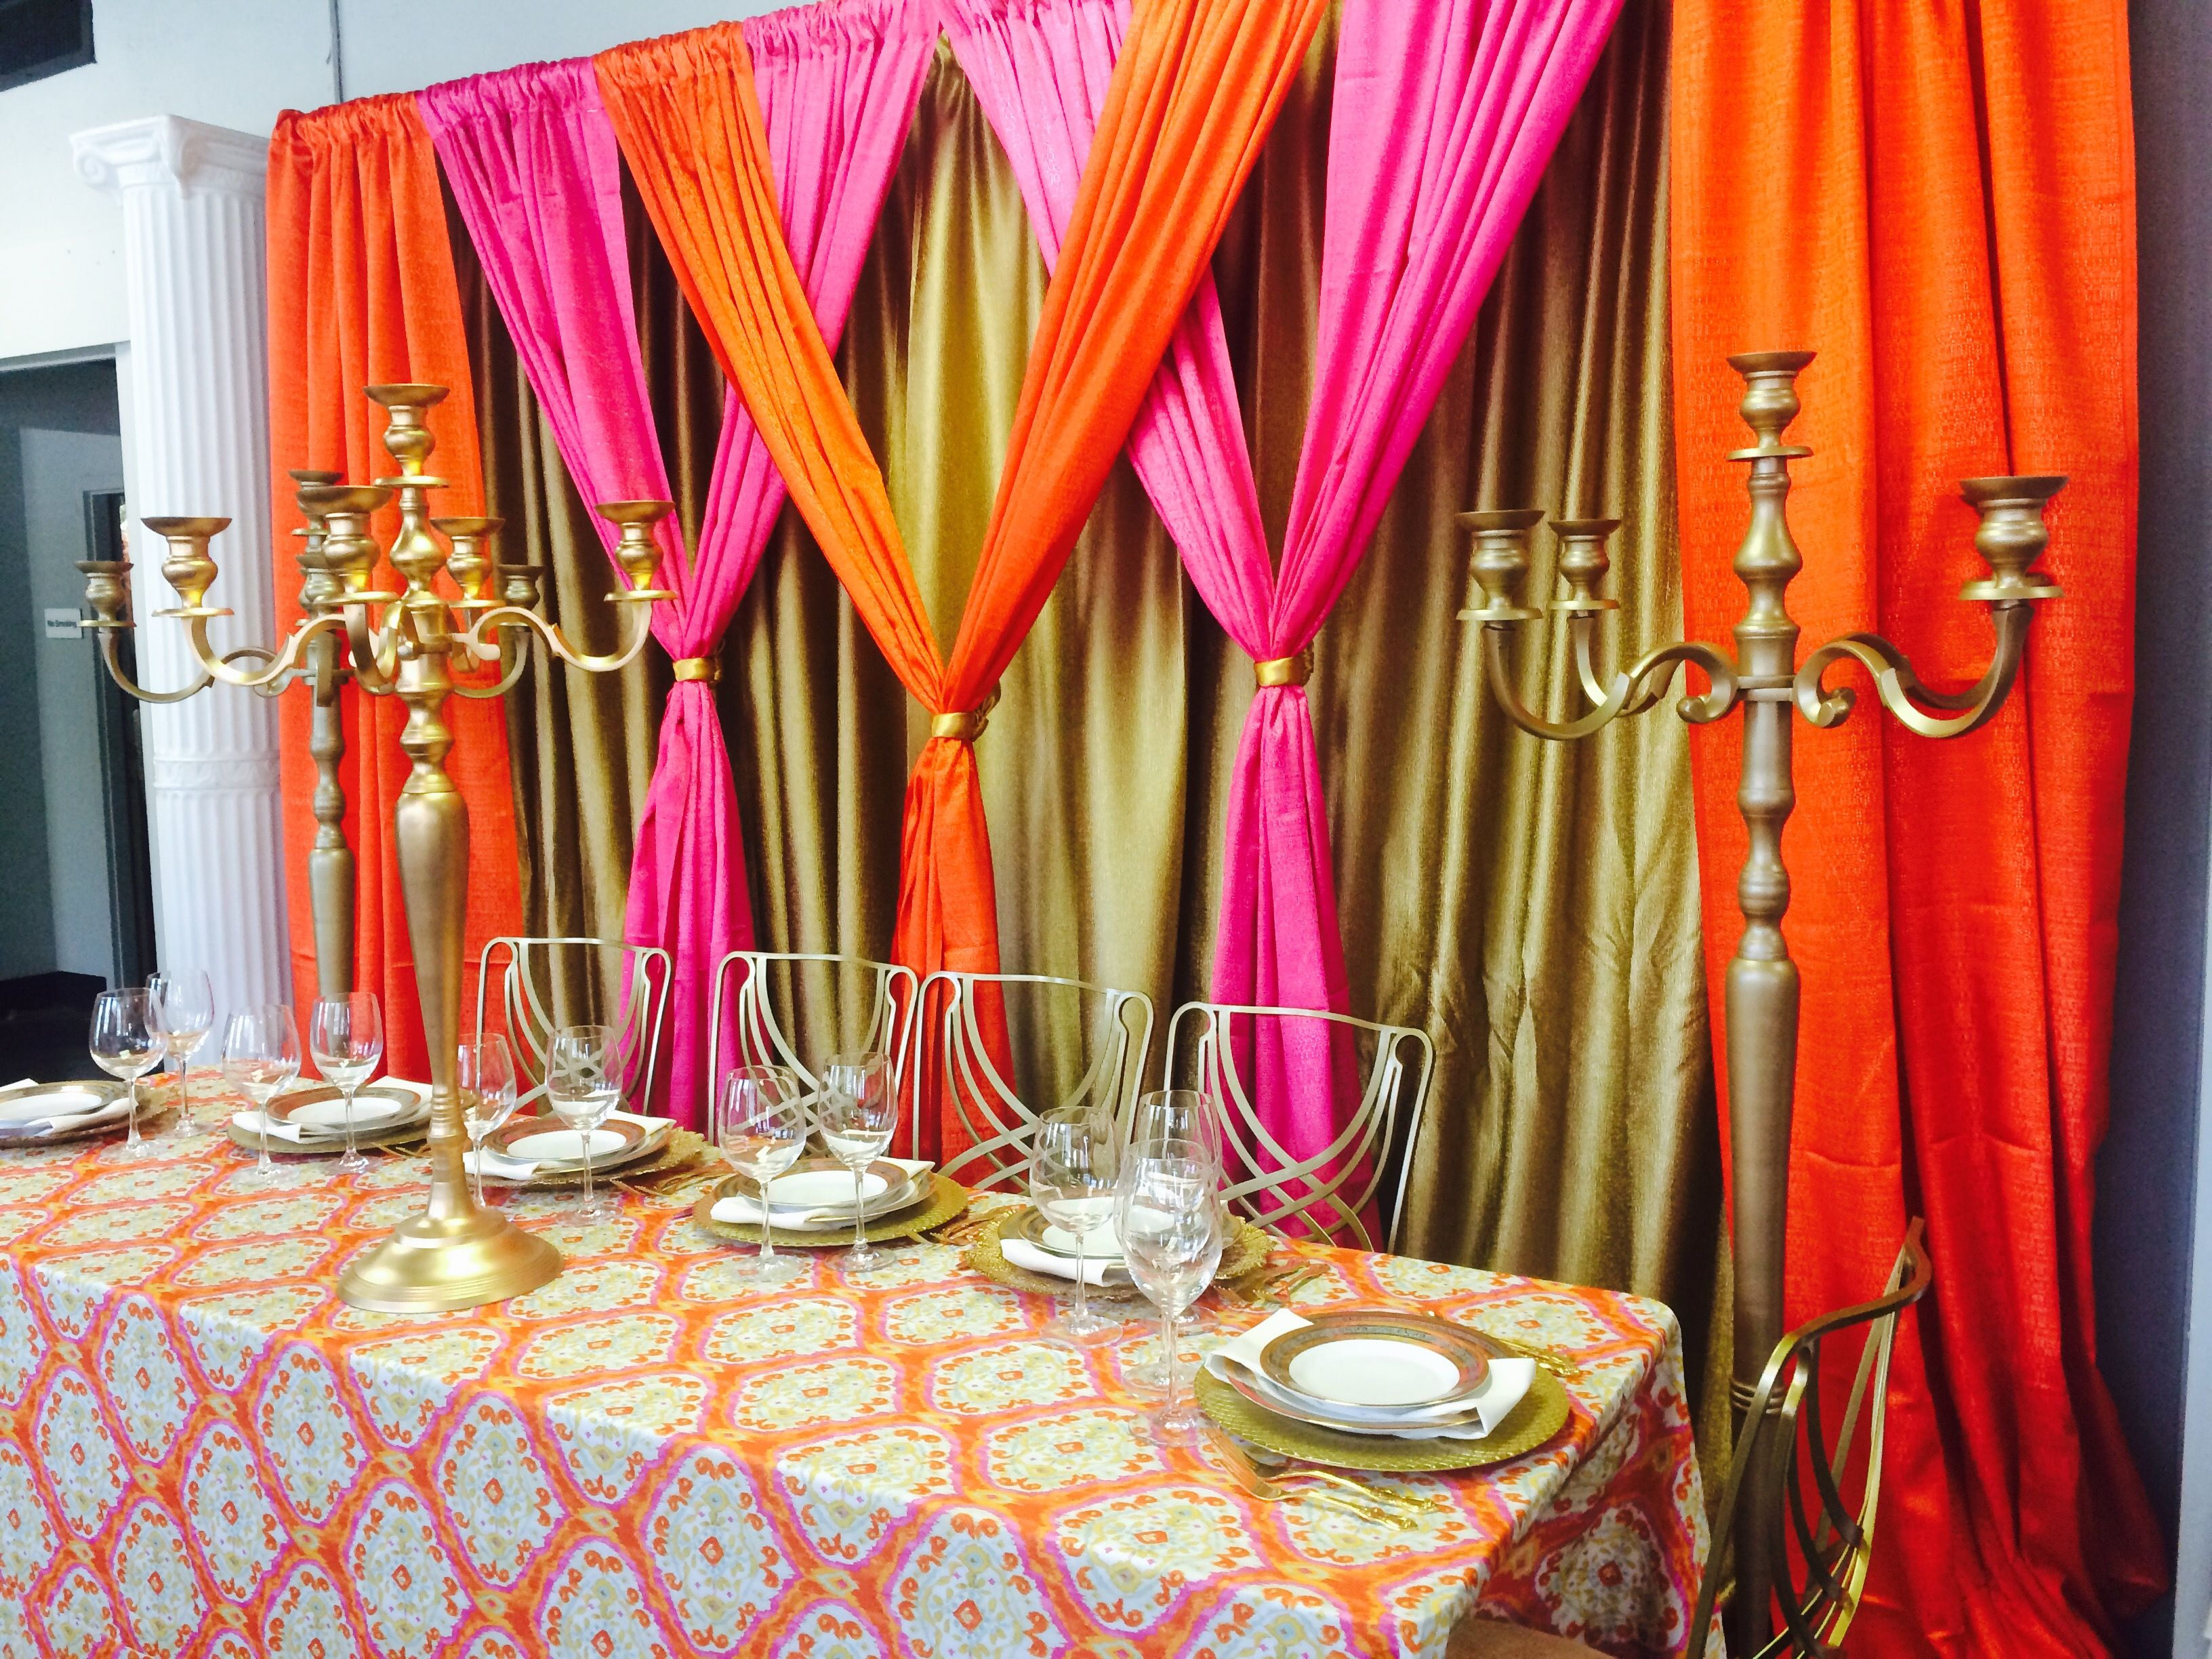 dsc drape theatre backdrops event rent and drapes for stage zoomdetails party hire